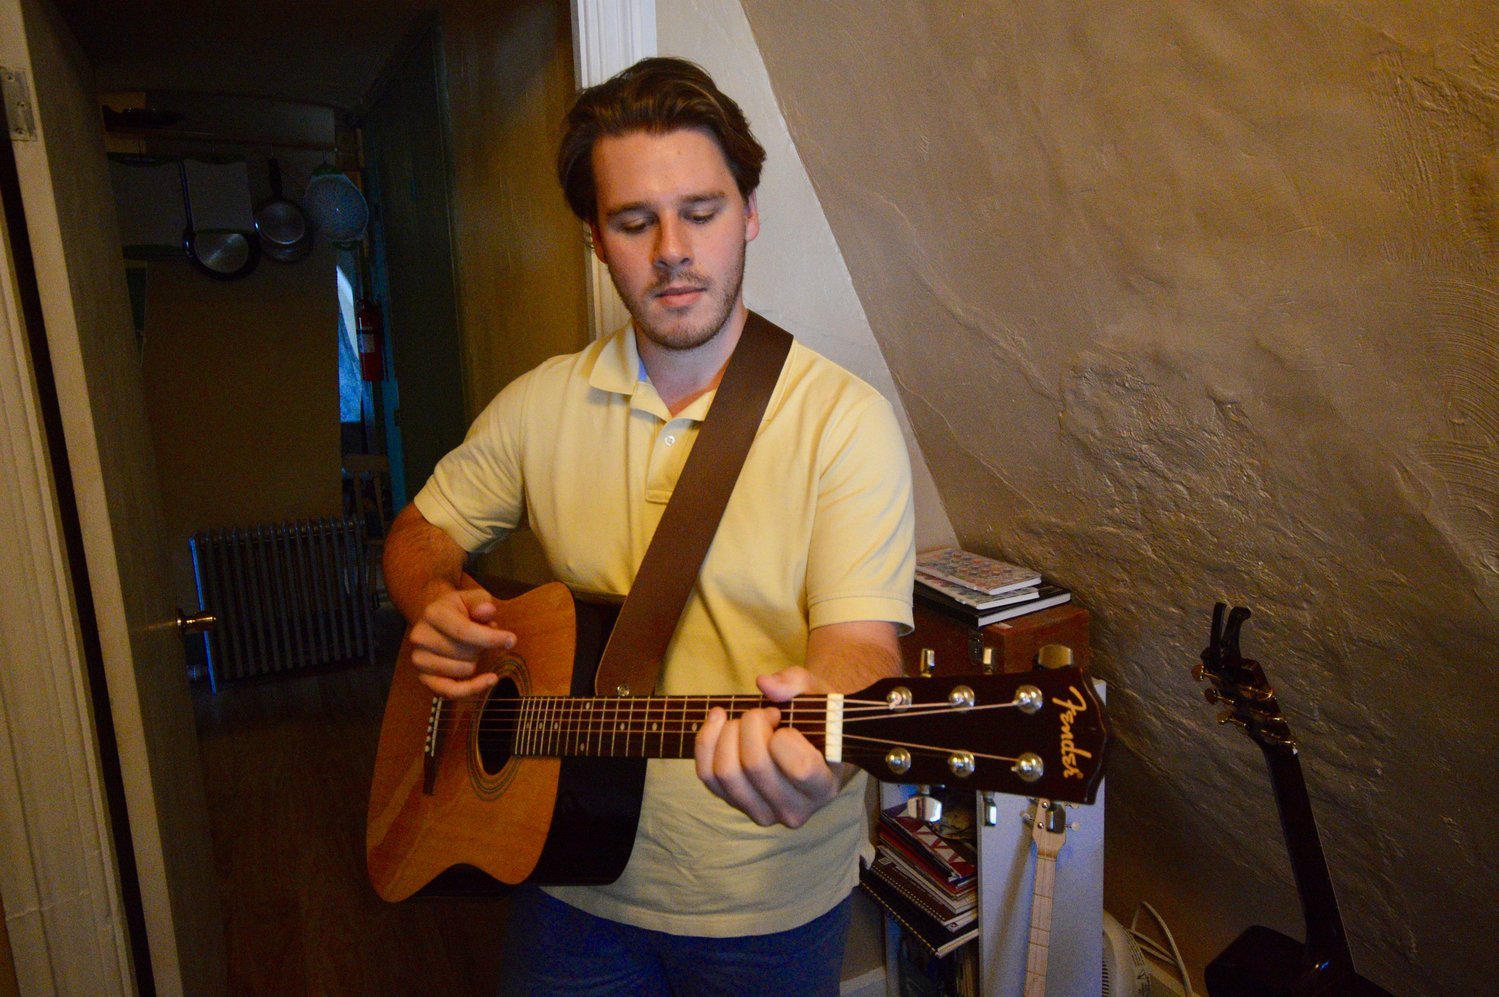 Nicholas Quigley plays acoustic guitar in his apartment's tiny music studio that's crammed with other instruments. He used guitar as a counterpoint to nature sounds he heard during a walk at Gooseberry Island in Massachusetts.